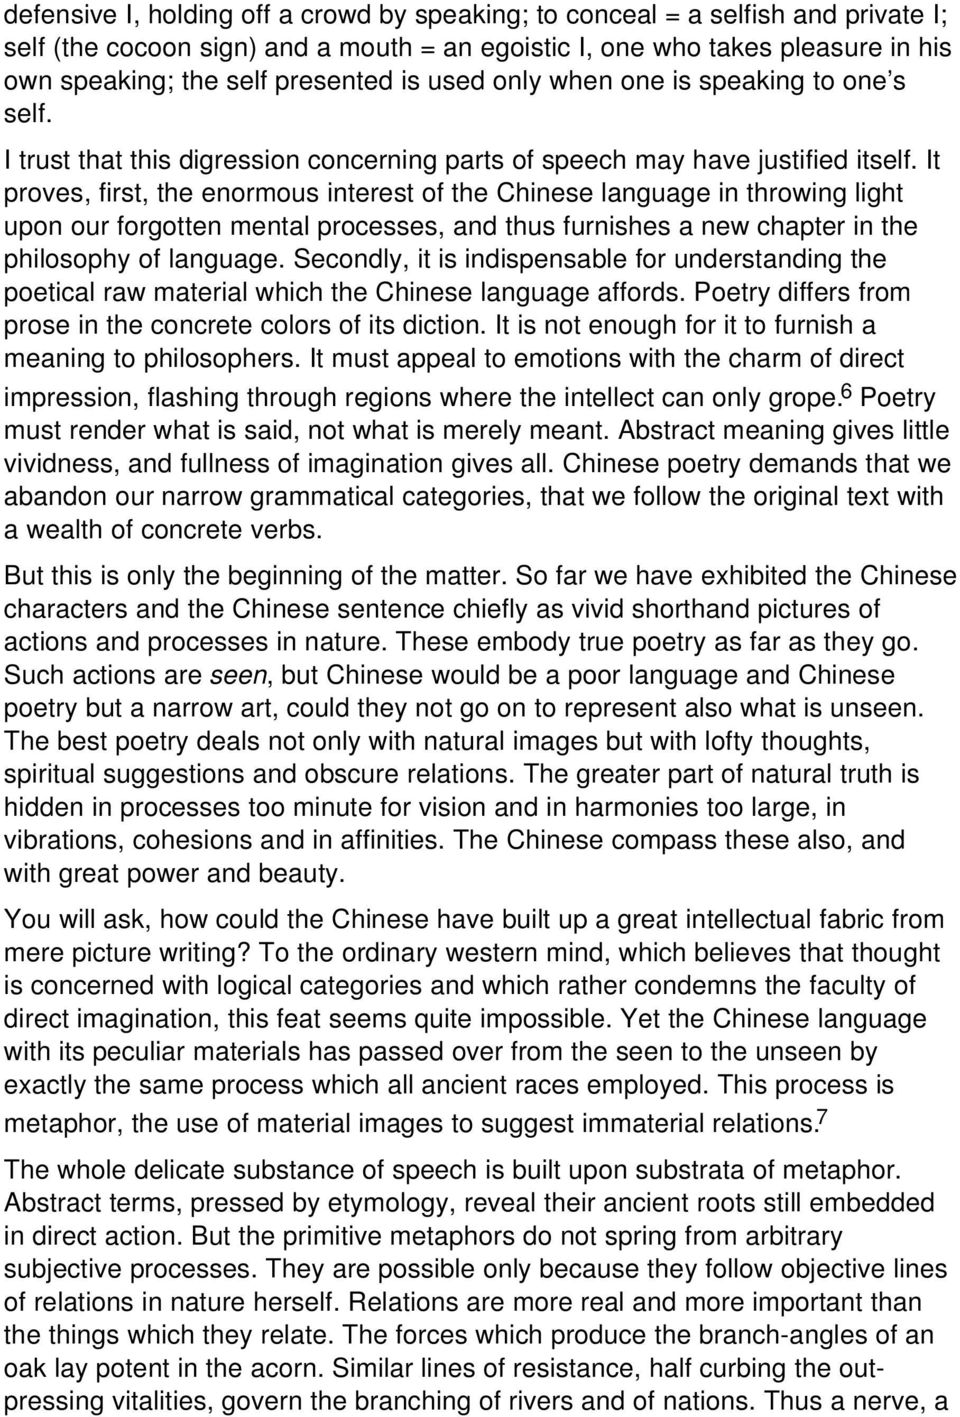 It proves, first, the enormous interest of the Chinese language in throwing light upon our forgotten mental processes, and thus furnishes a new chapter in the philosophy of language.